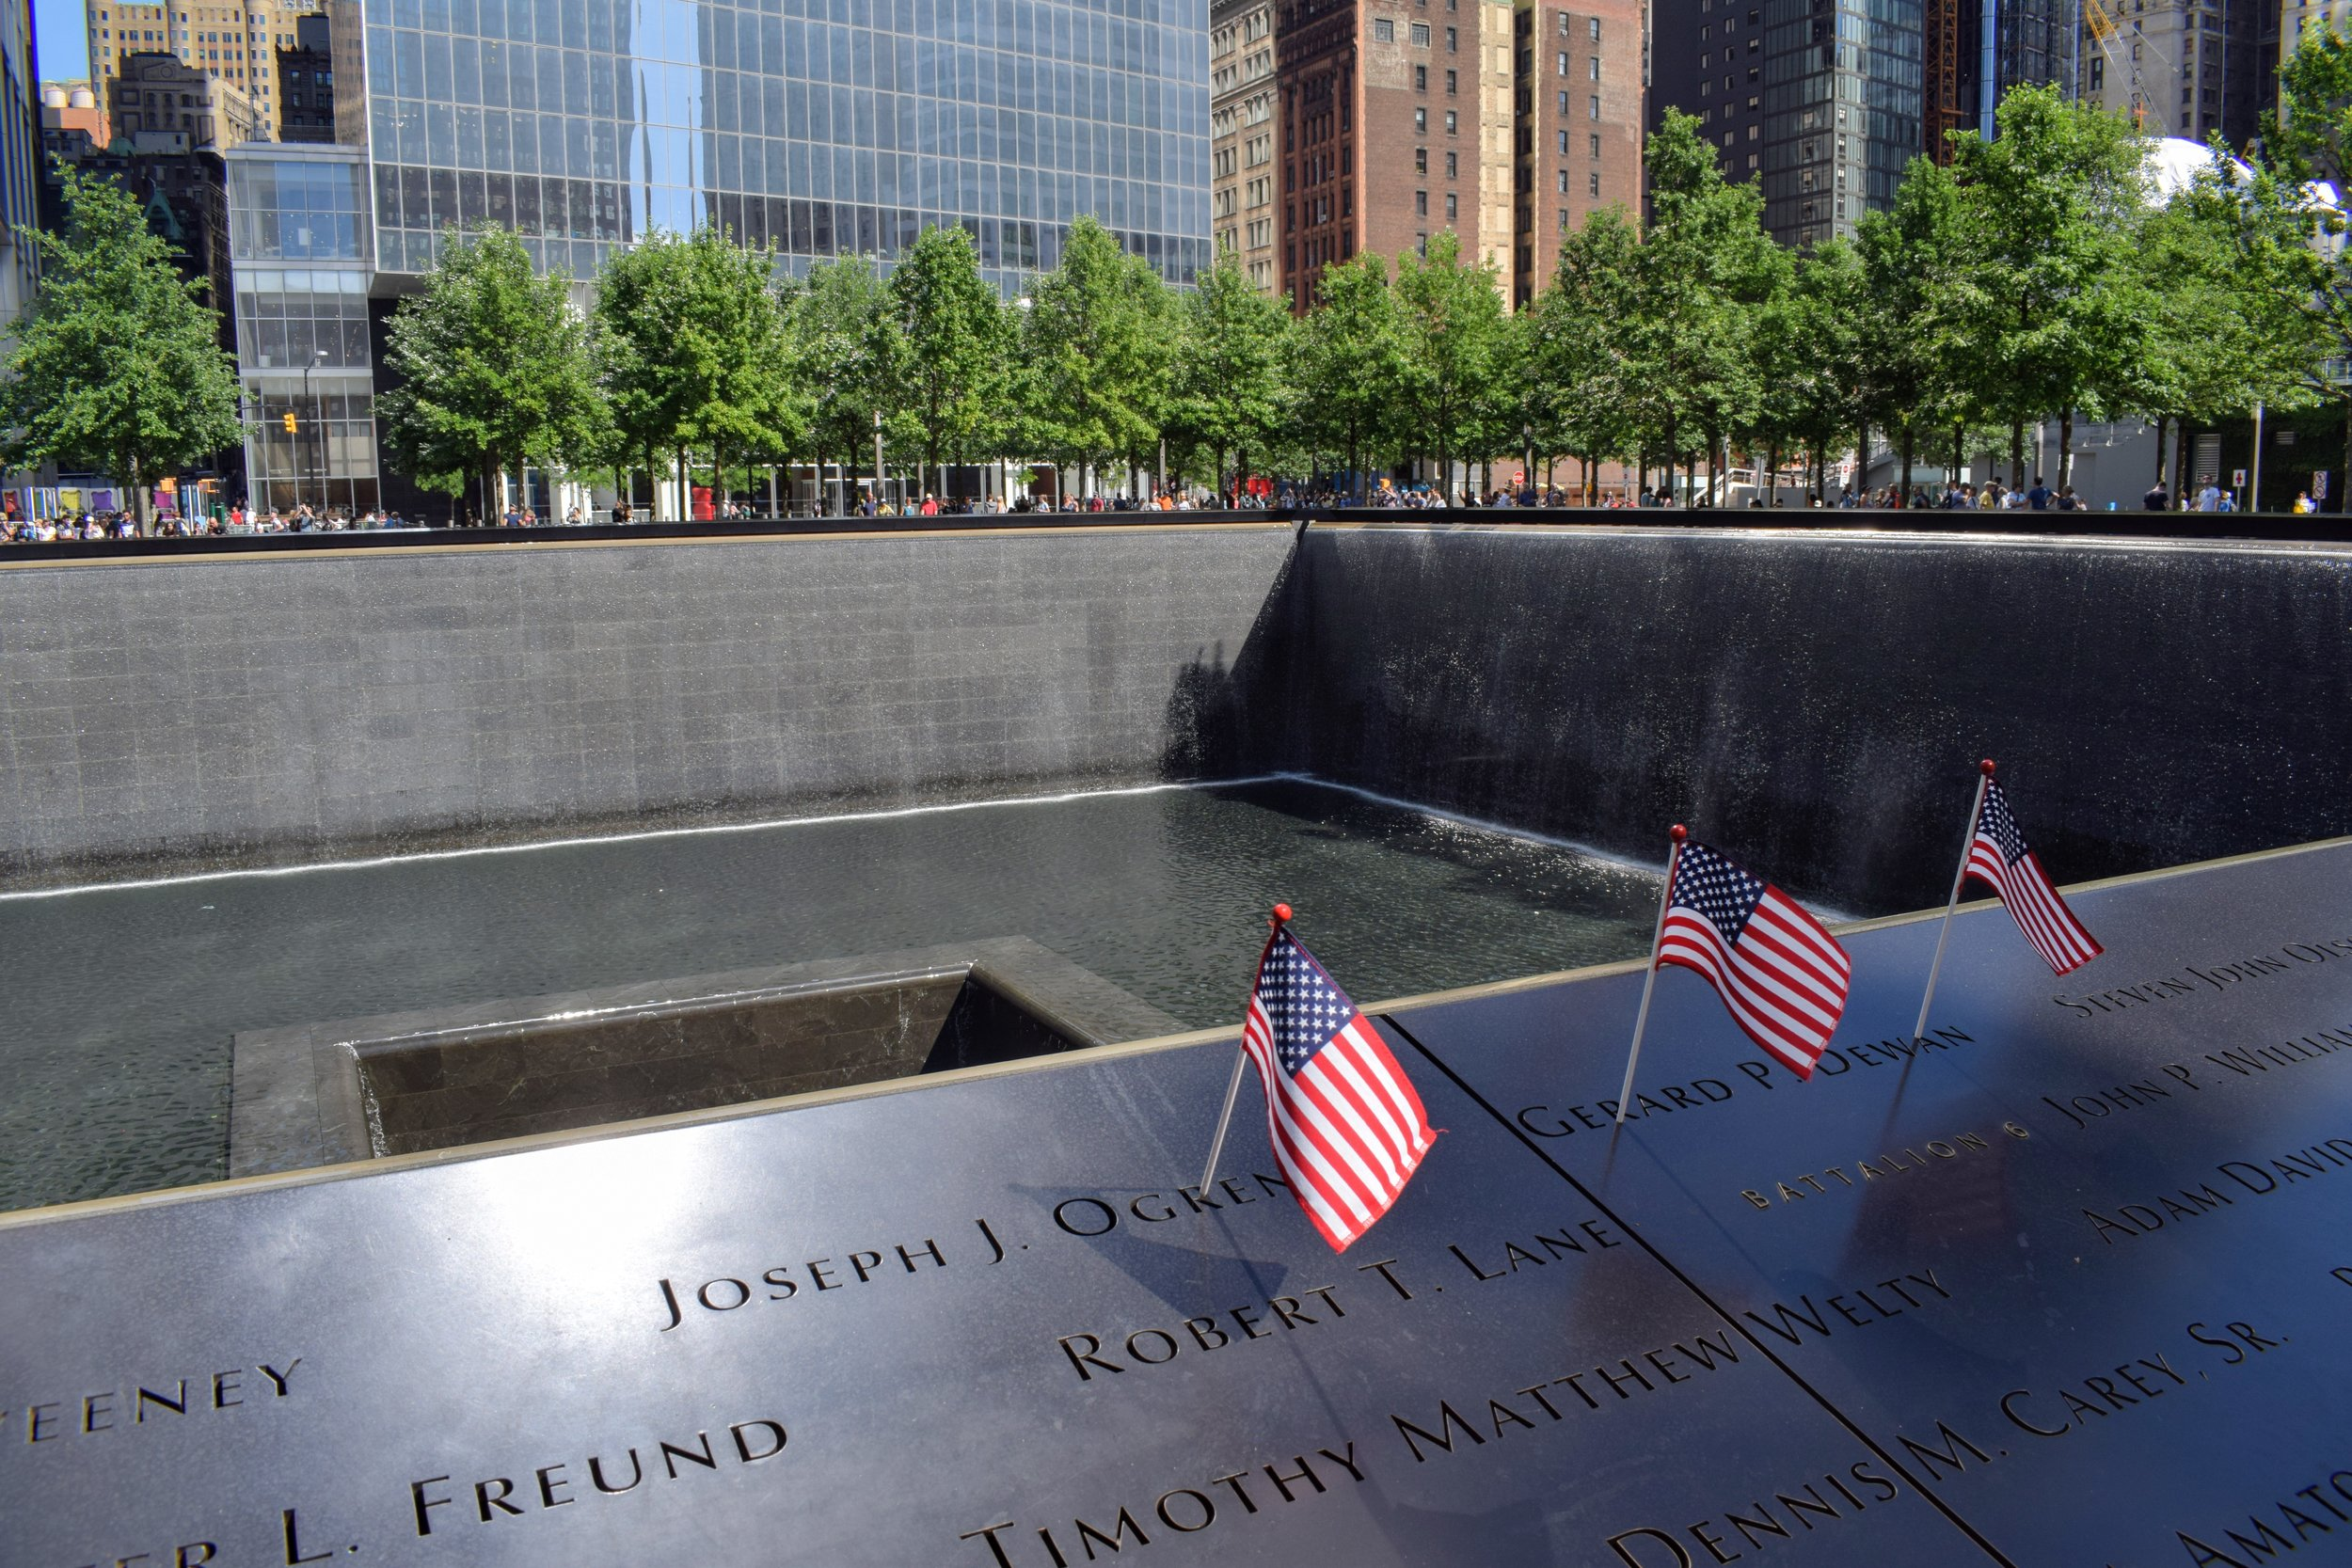 Names of lives lost during September 11th feature on the outer wall of one of the footprints representing the former Twin Towers in New York.